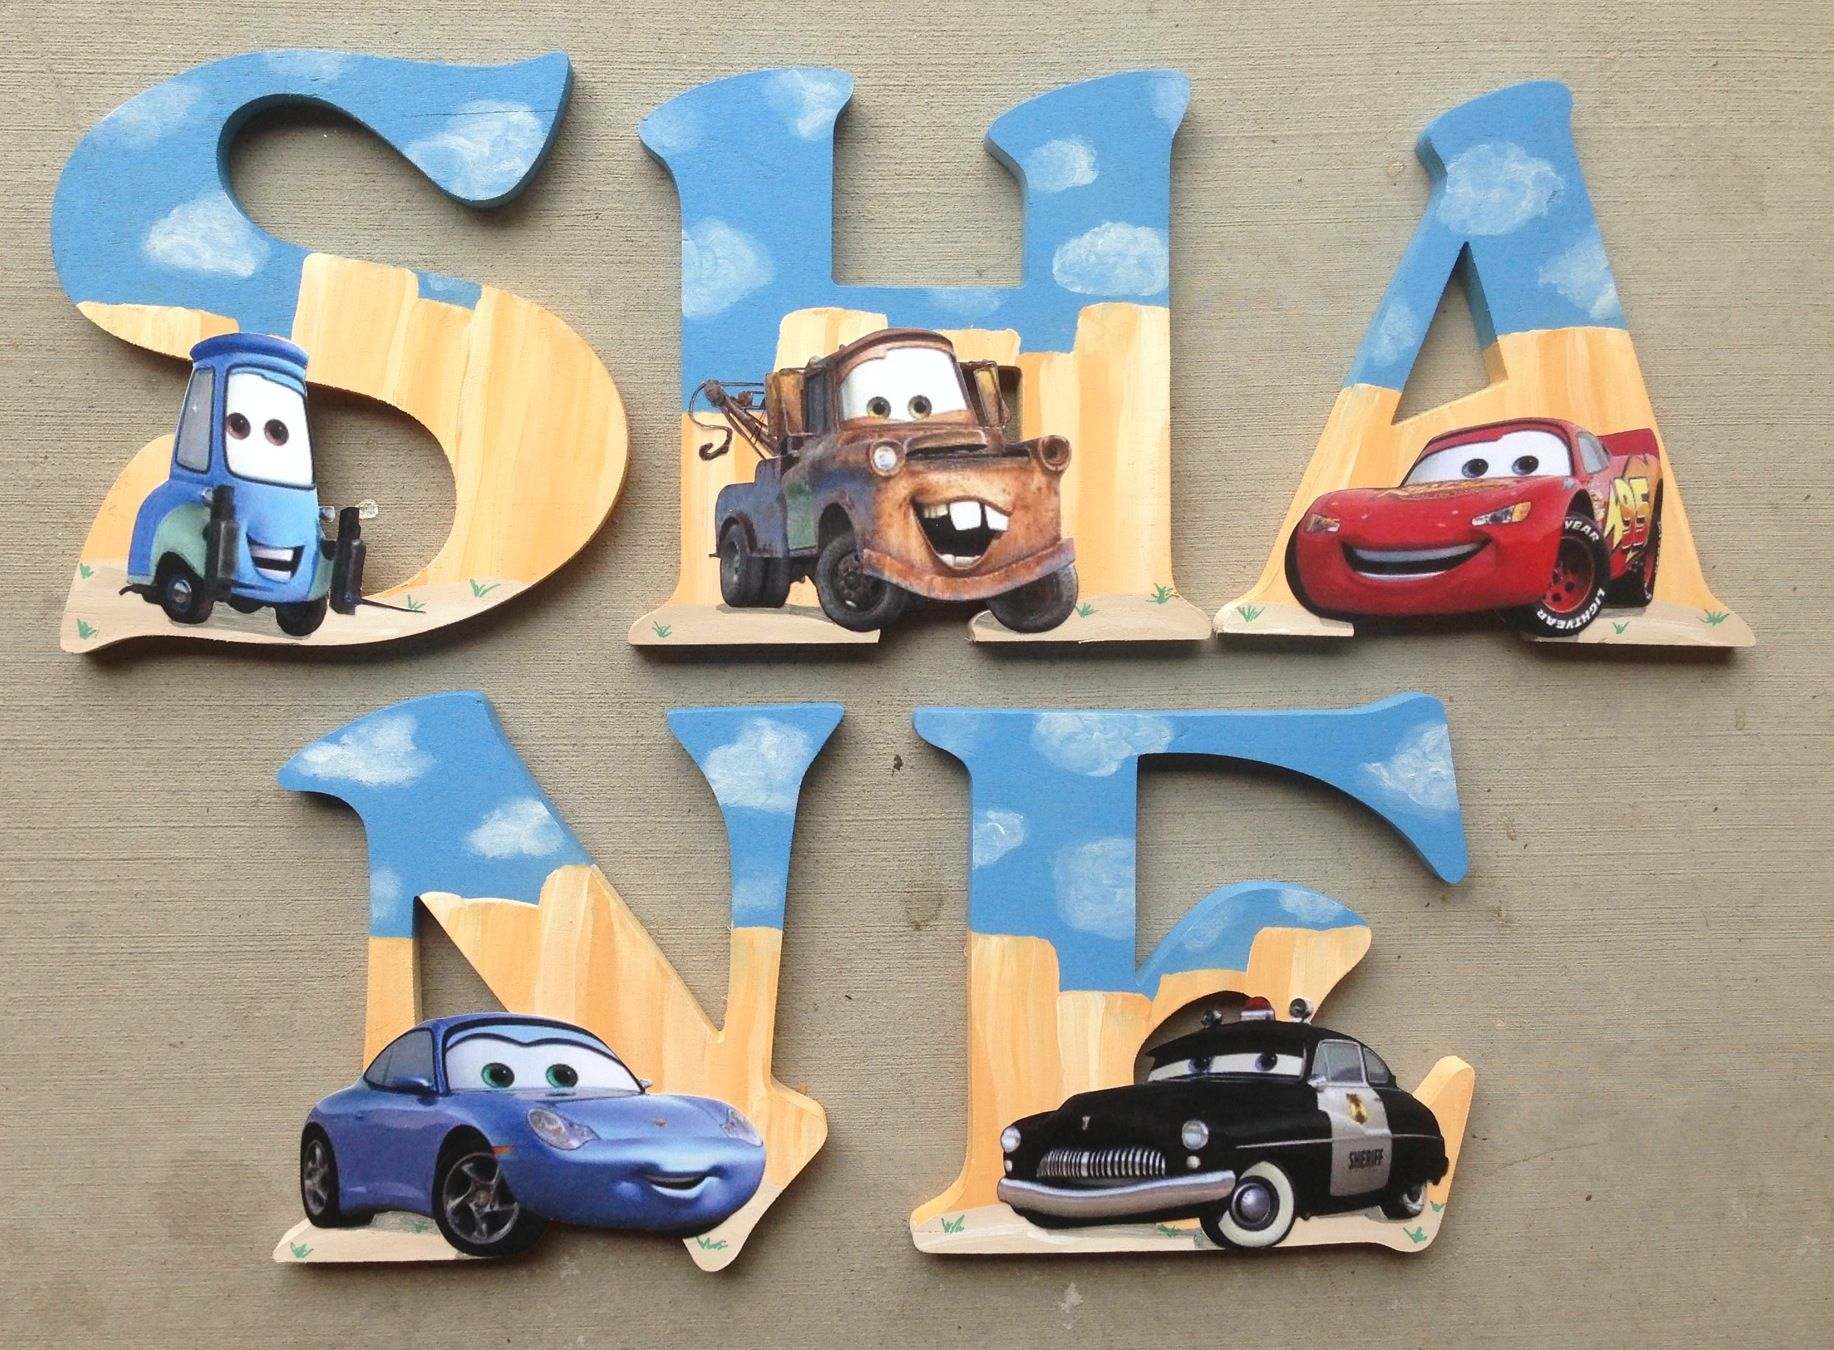 Custom Wooden Letters, hand-painted and designed by Kid Murals by Dana Railey. Letters are $10-$12 per letter plus S&H. They are great as #babyshower gifts, #nurserydécor, #kidsrooms, #woodendécor, teacher gifts, #hangingletters, and more!  Any theme, specific characters, pattern and color can be created!  Please contact Dana on FB at http://www.facebook.com/kidmuralsbydanarailey   #babynursery, #babyboy, #cars, #disneycars, #boys, #nurserydécor,  #pixarcars, #babydecor